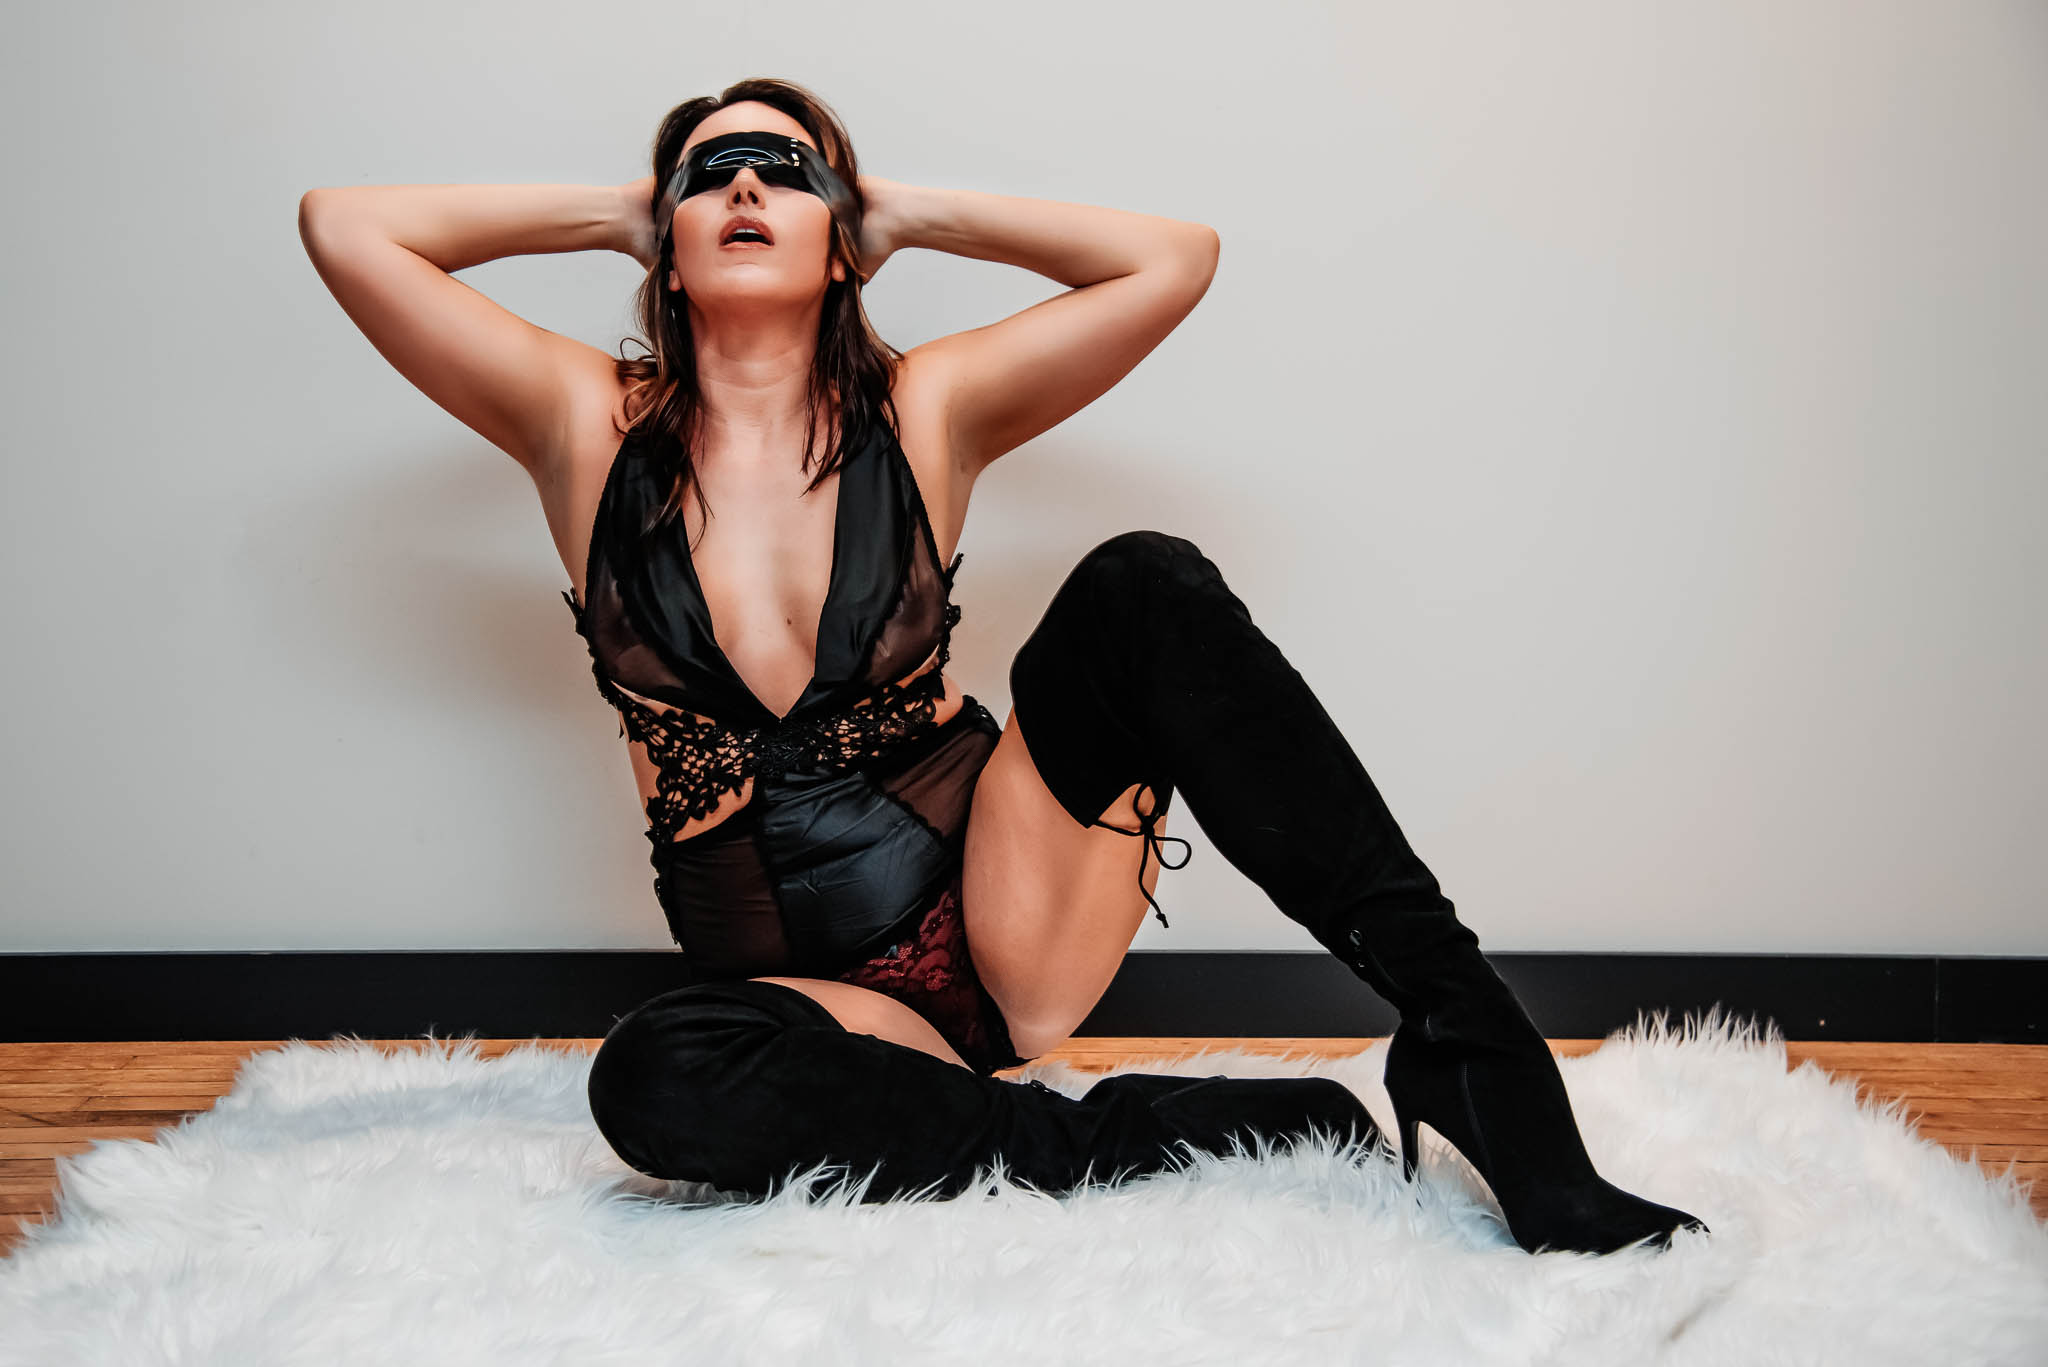 powerful woman appearing submissive